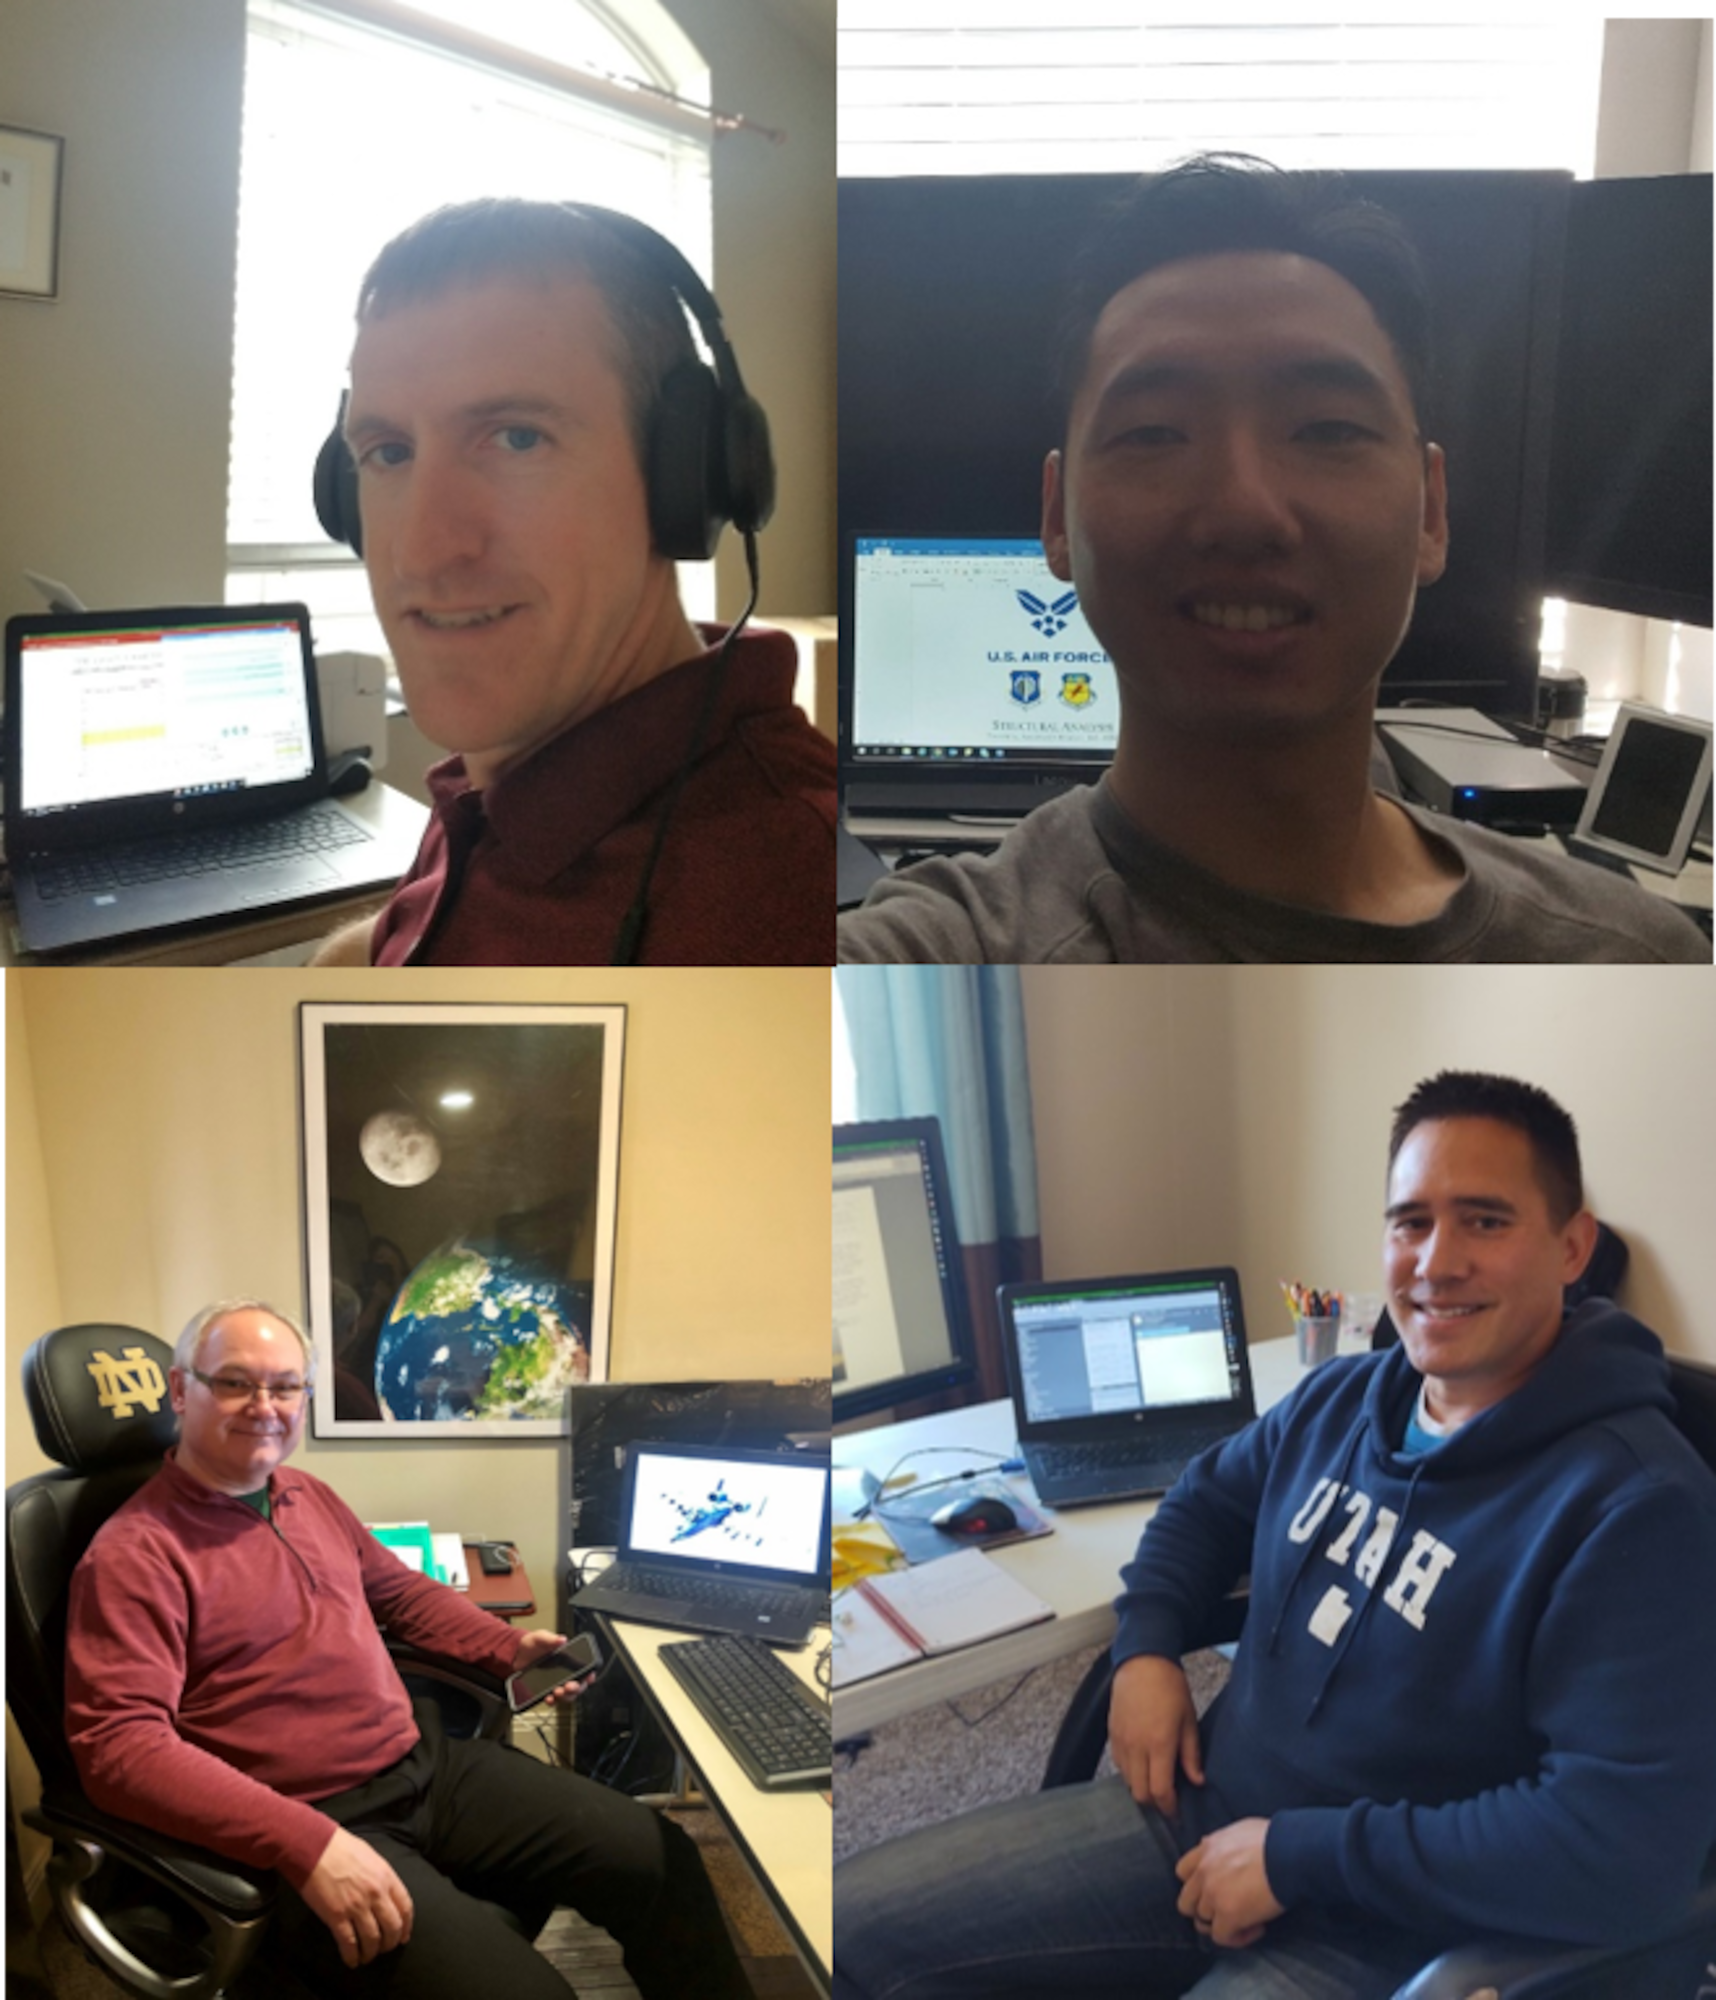 The A-10 Engineering Team met virtually to review data and discuss.  Pictured are (starting top left and moving cw) Reed Fawcett, 1st Lt. James Zhen, Greg Stowe and Michael Hackett, Jr.  (courtesy photo)